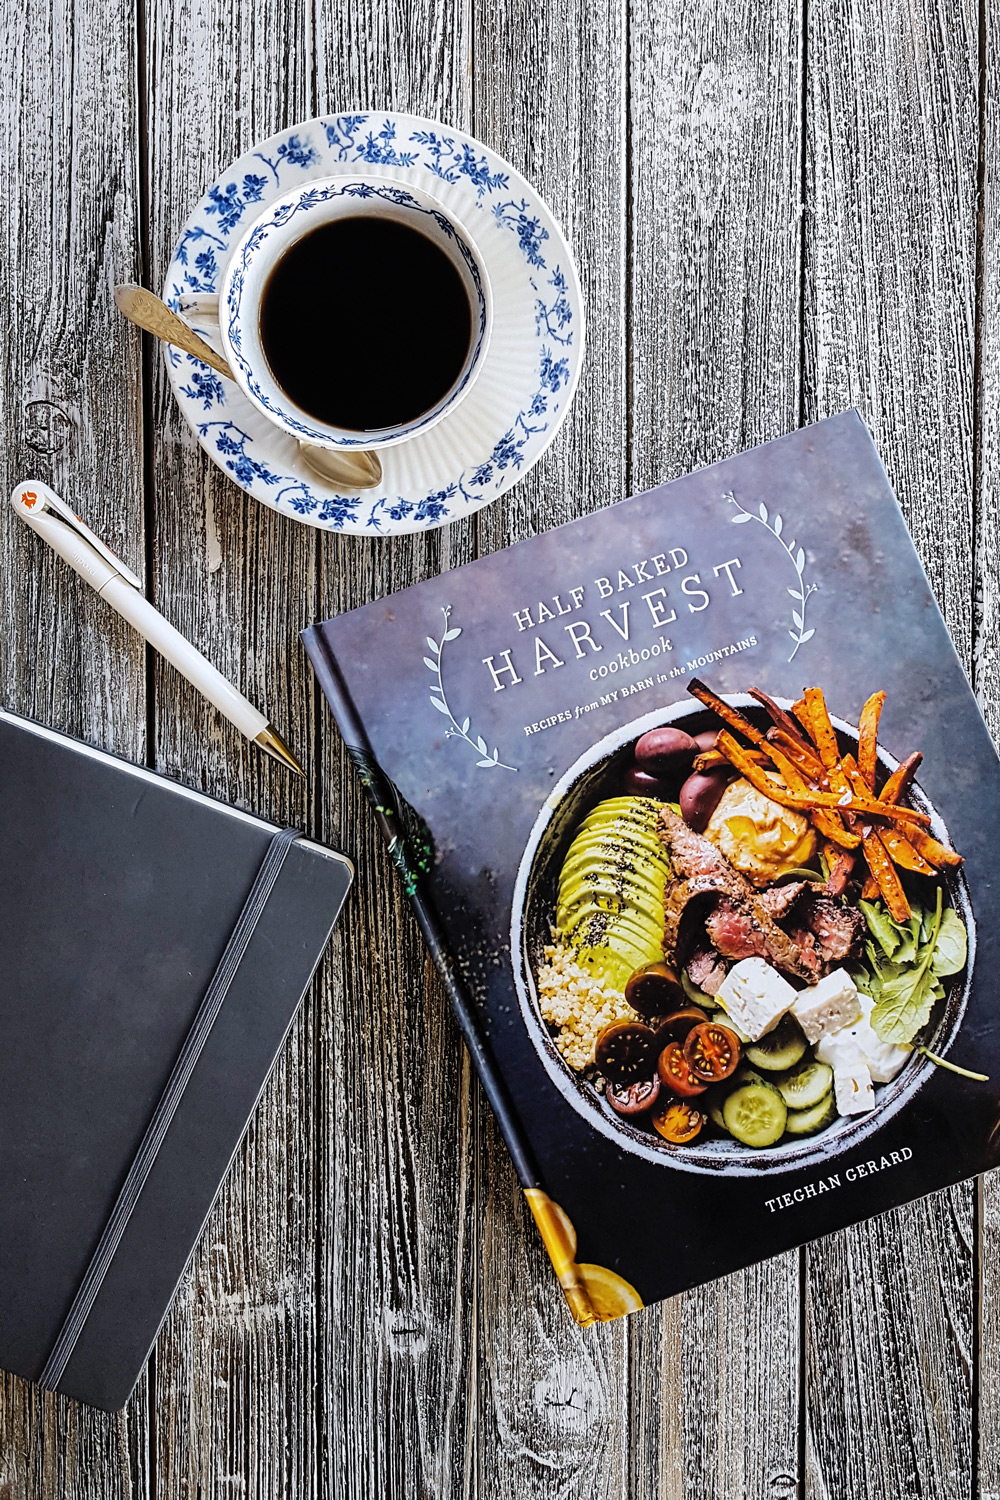 Half Baked Harvest Cookbook by Tieghan Gerard | A Cookbook Review